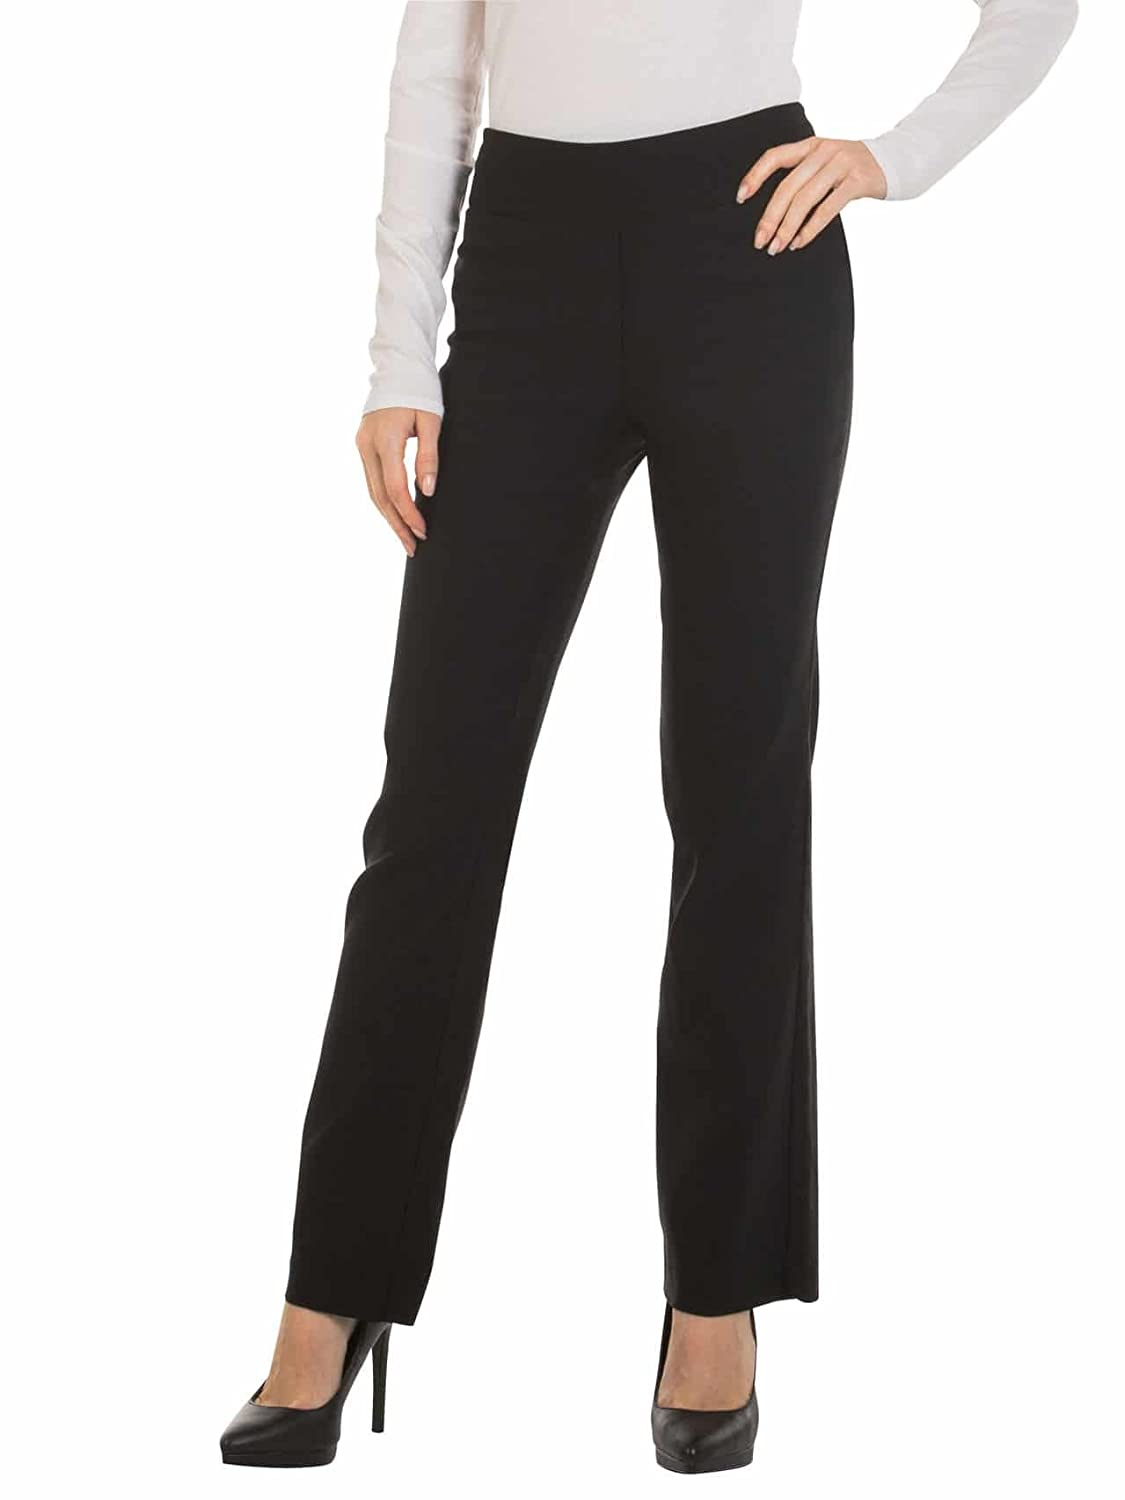 2LUV Women's Formal Yoga Dress Pants at Amazon Women's Clothing store: